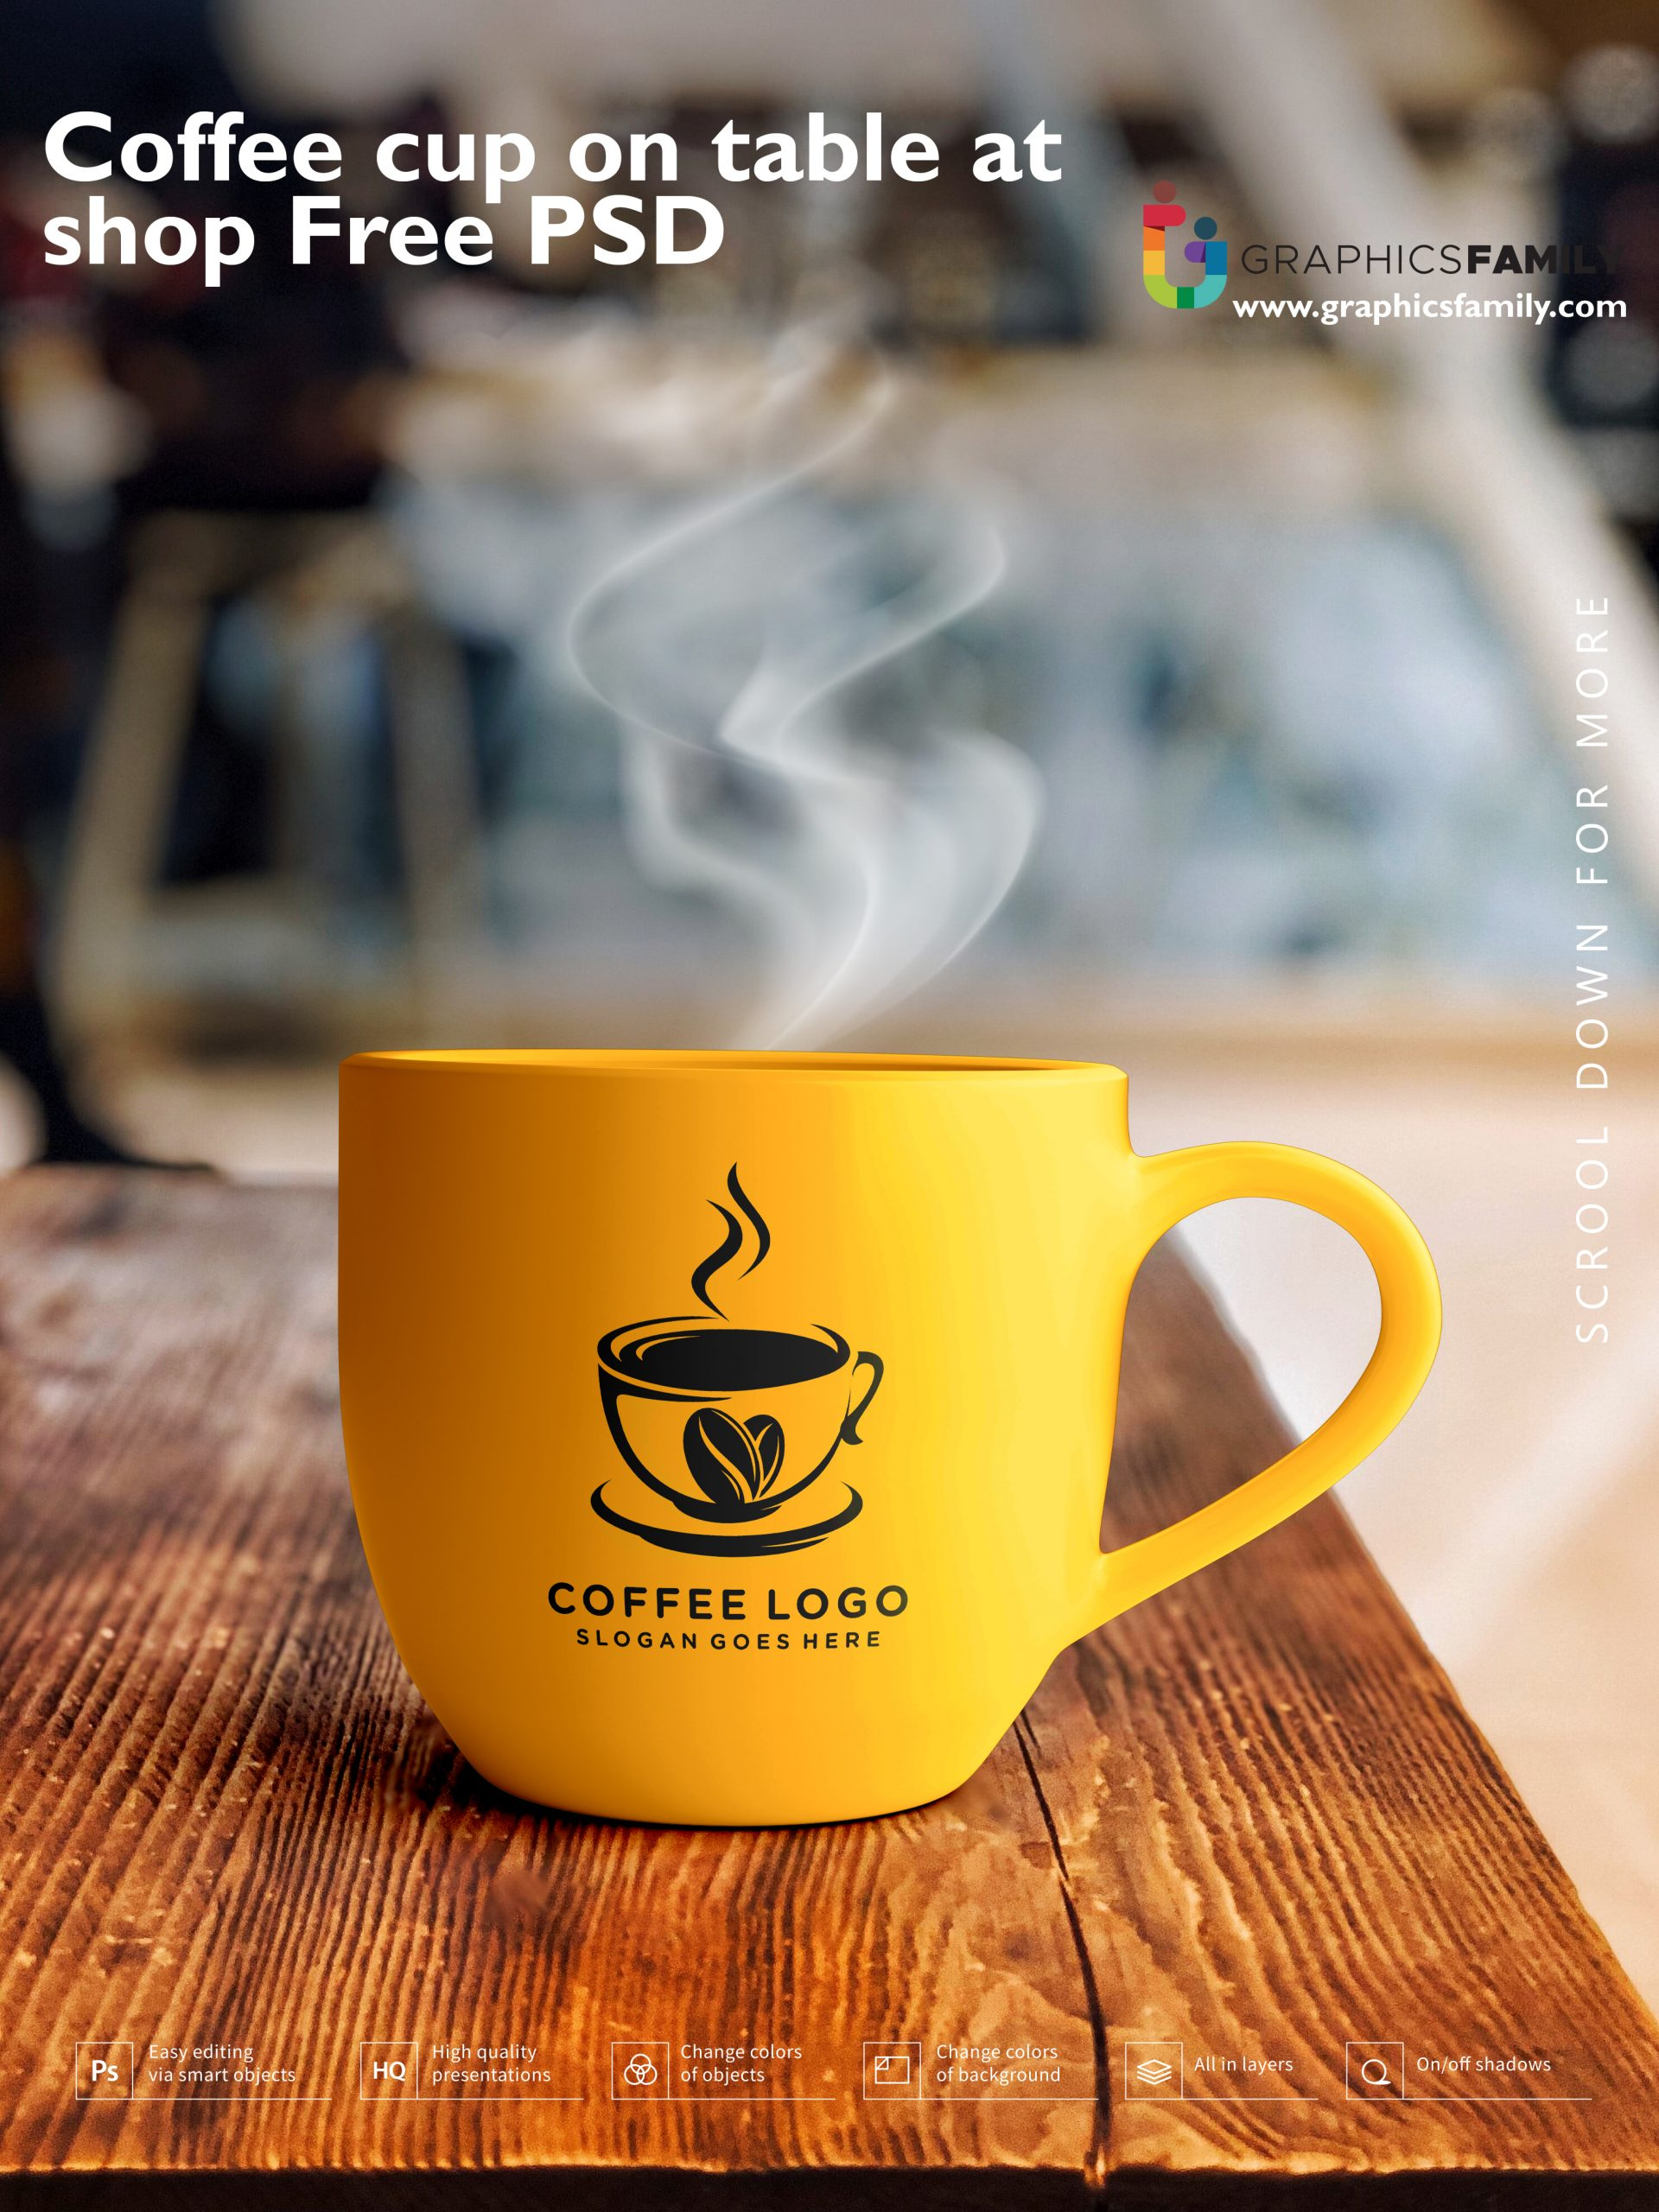 Coffee cup on table at shop Free PSD Download